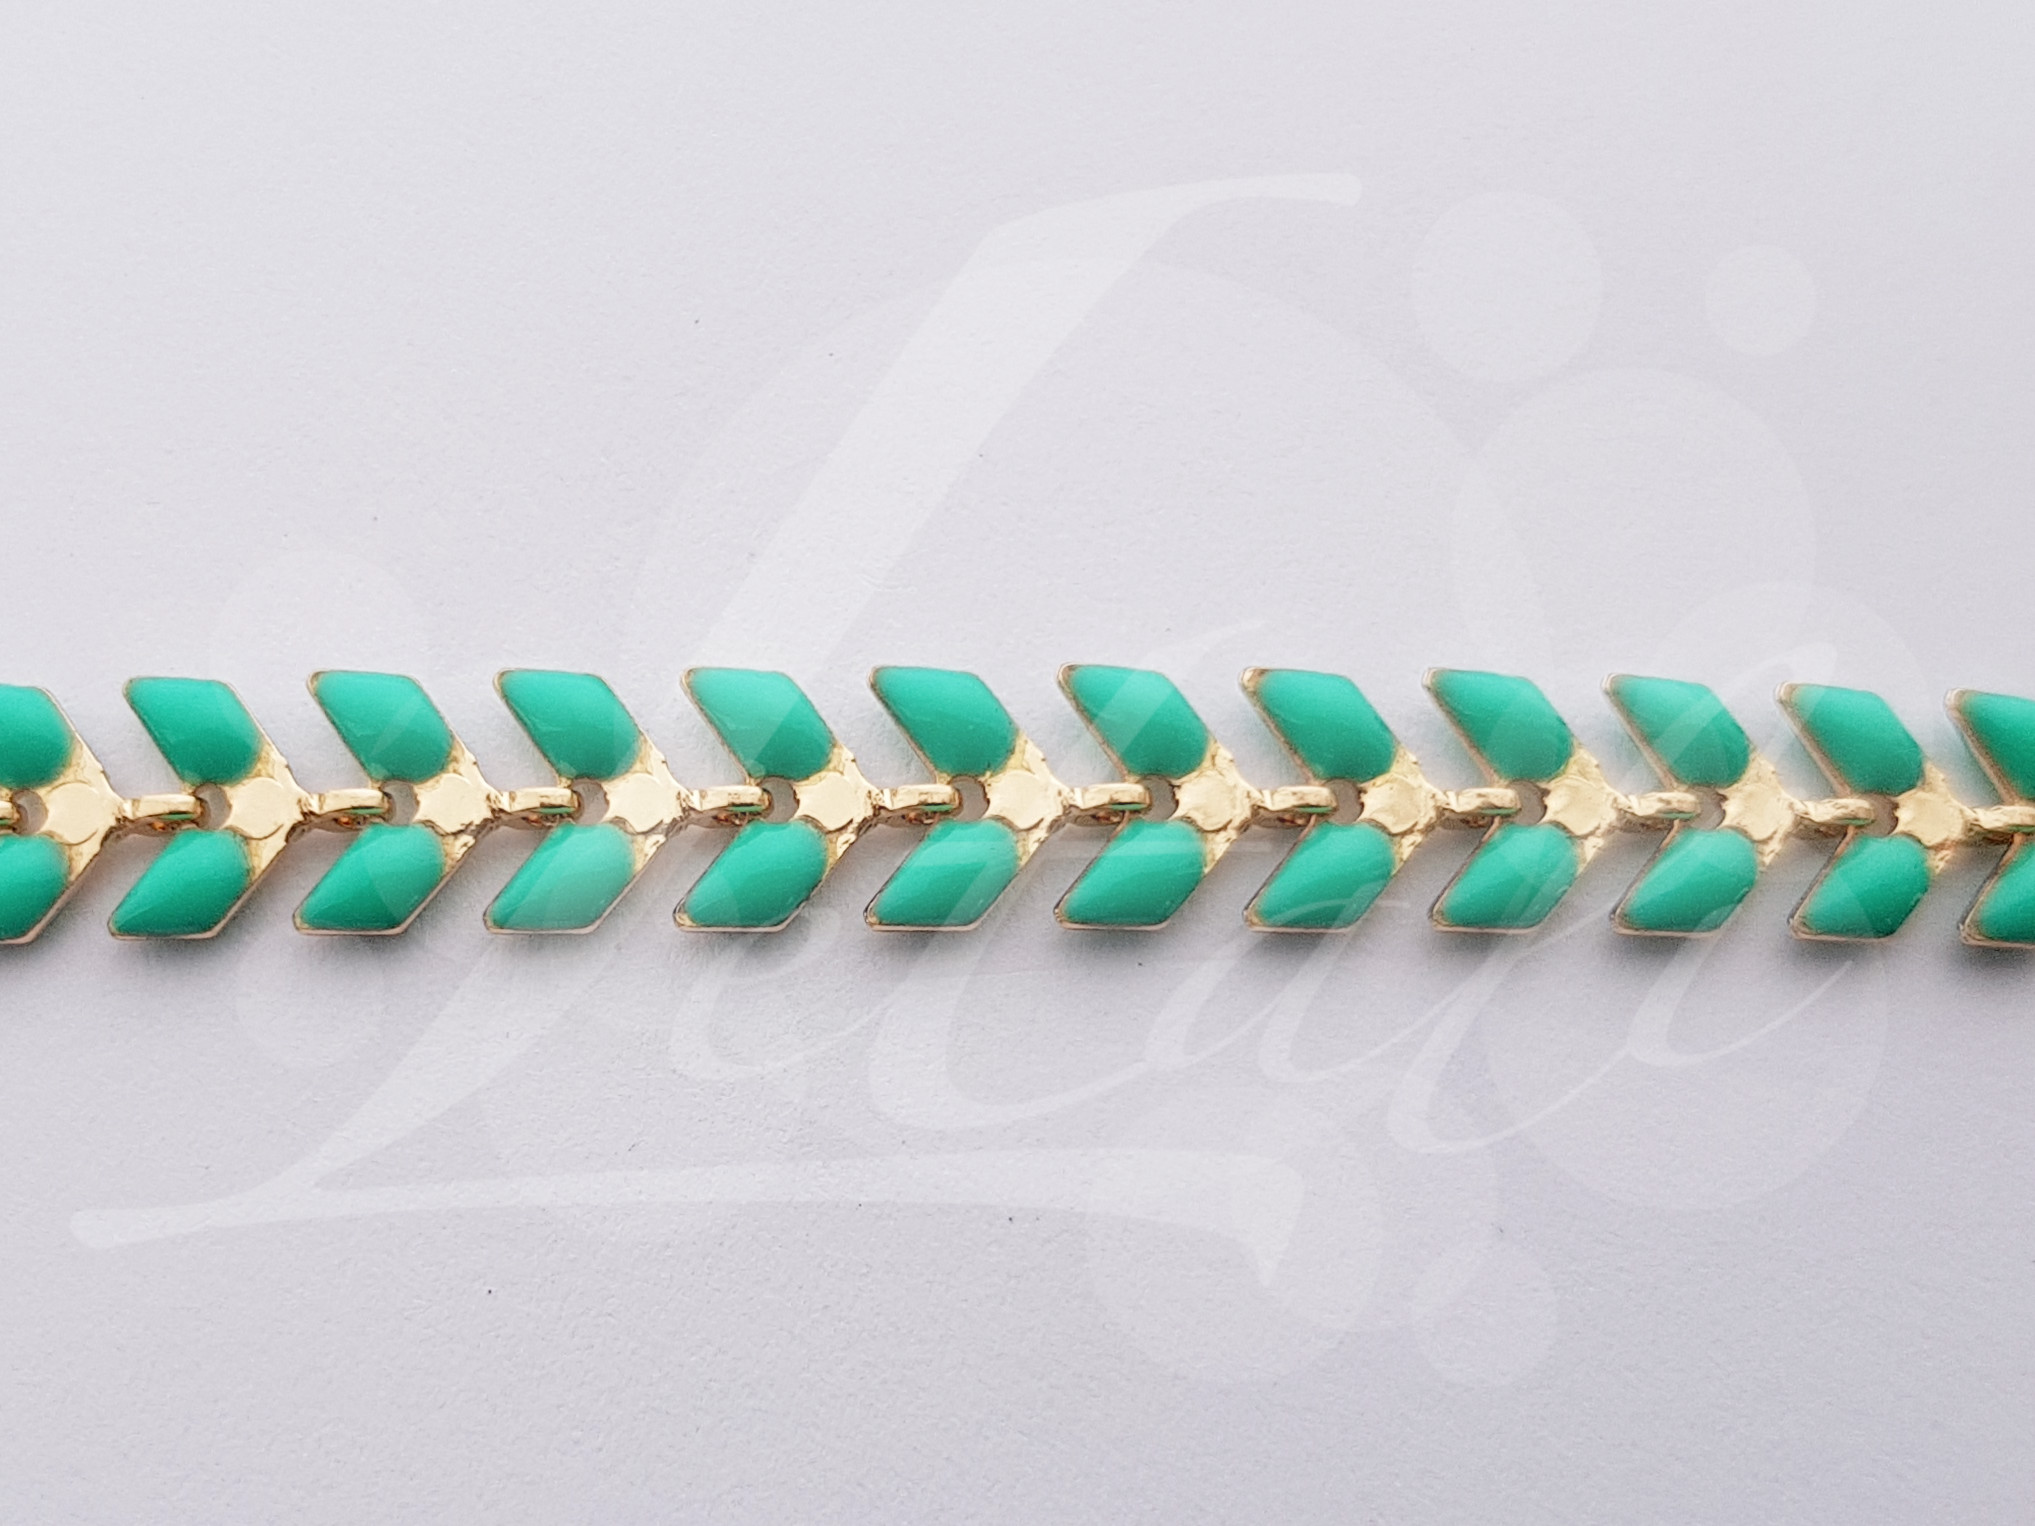 Letali email ketting_licht turquoise 5